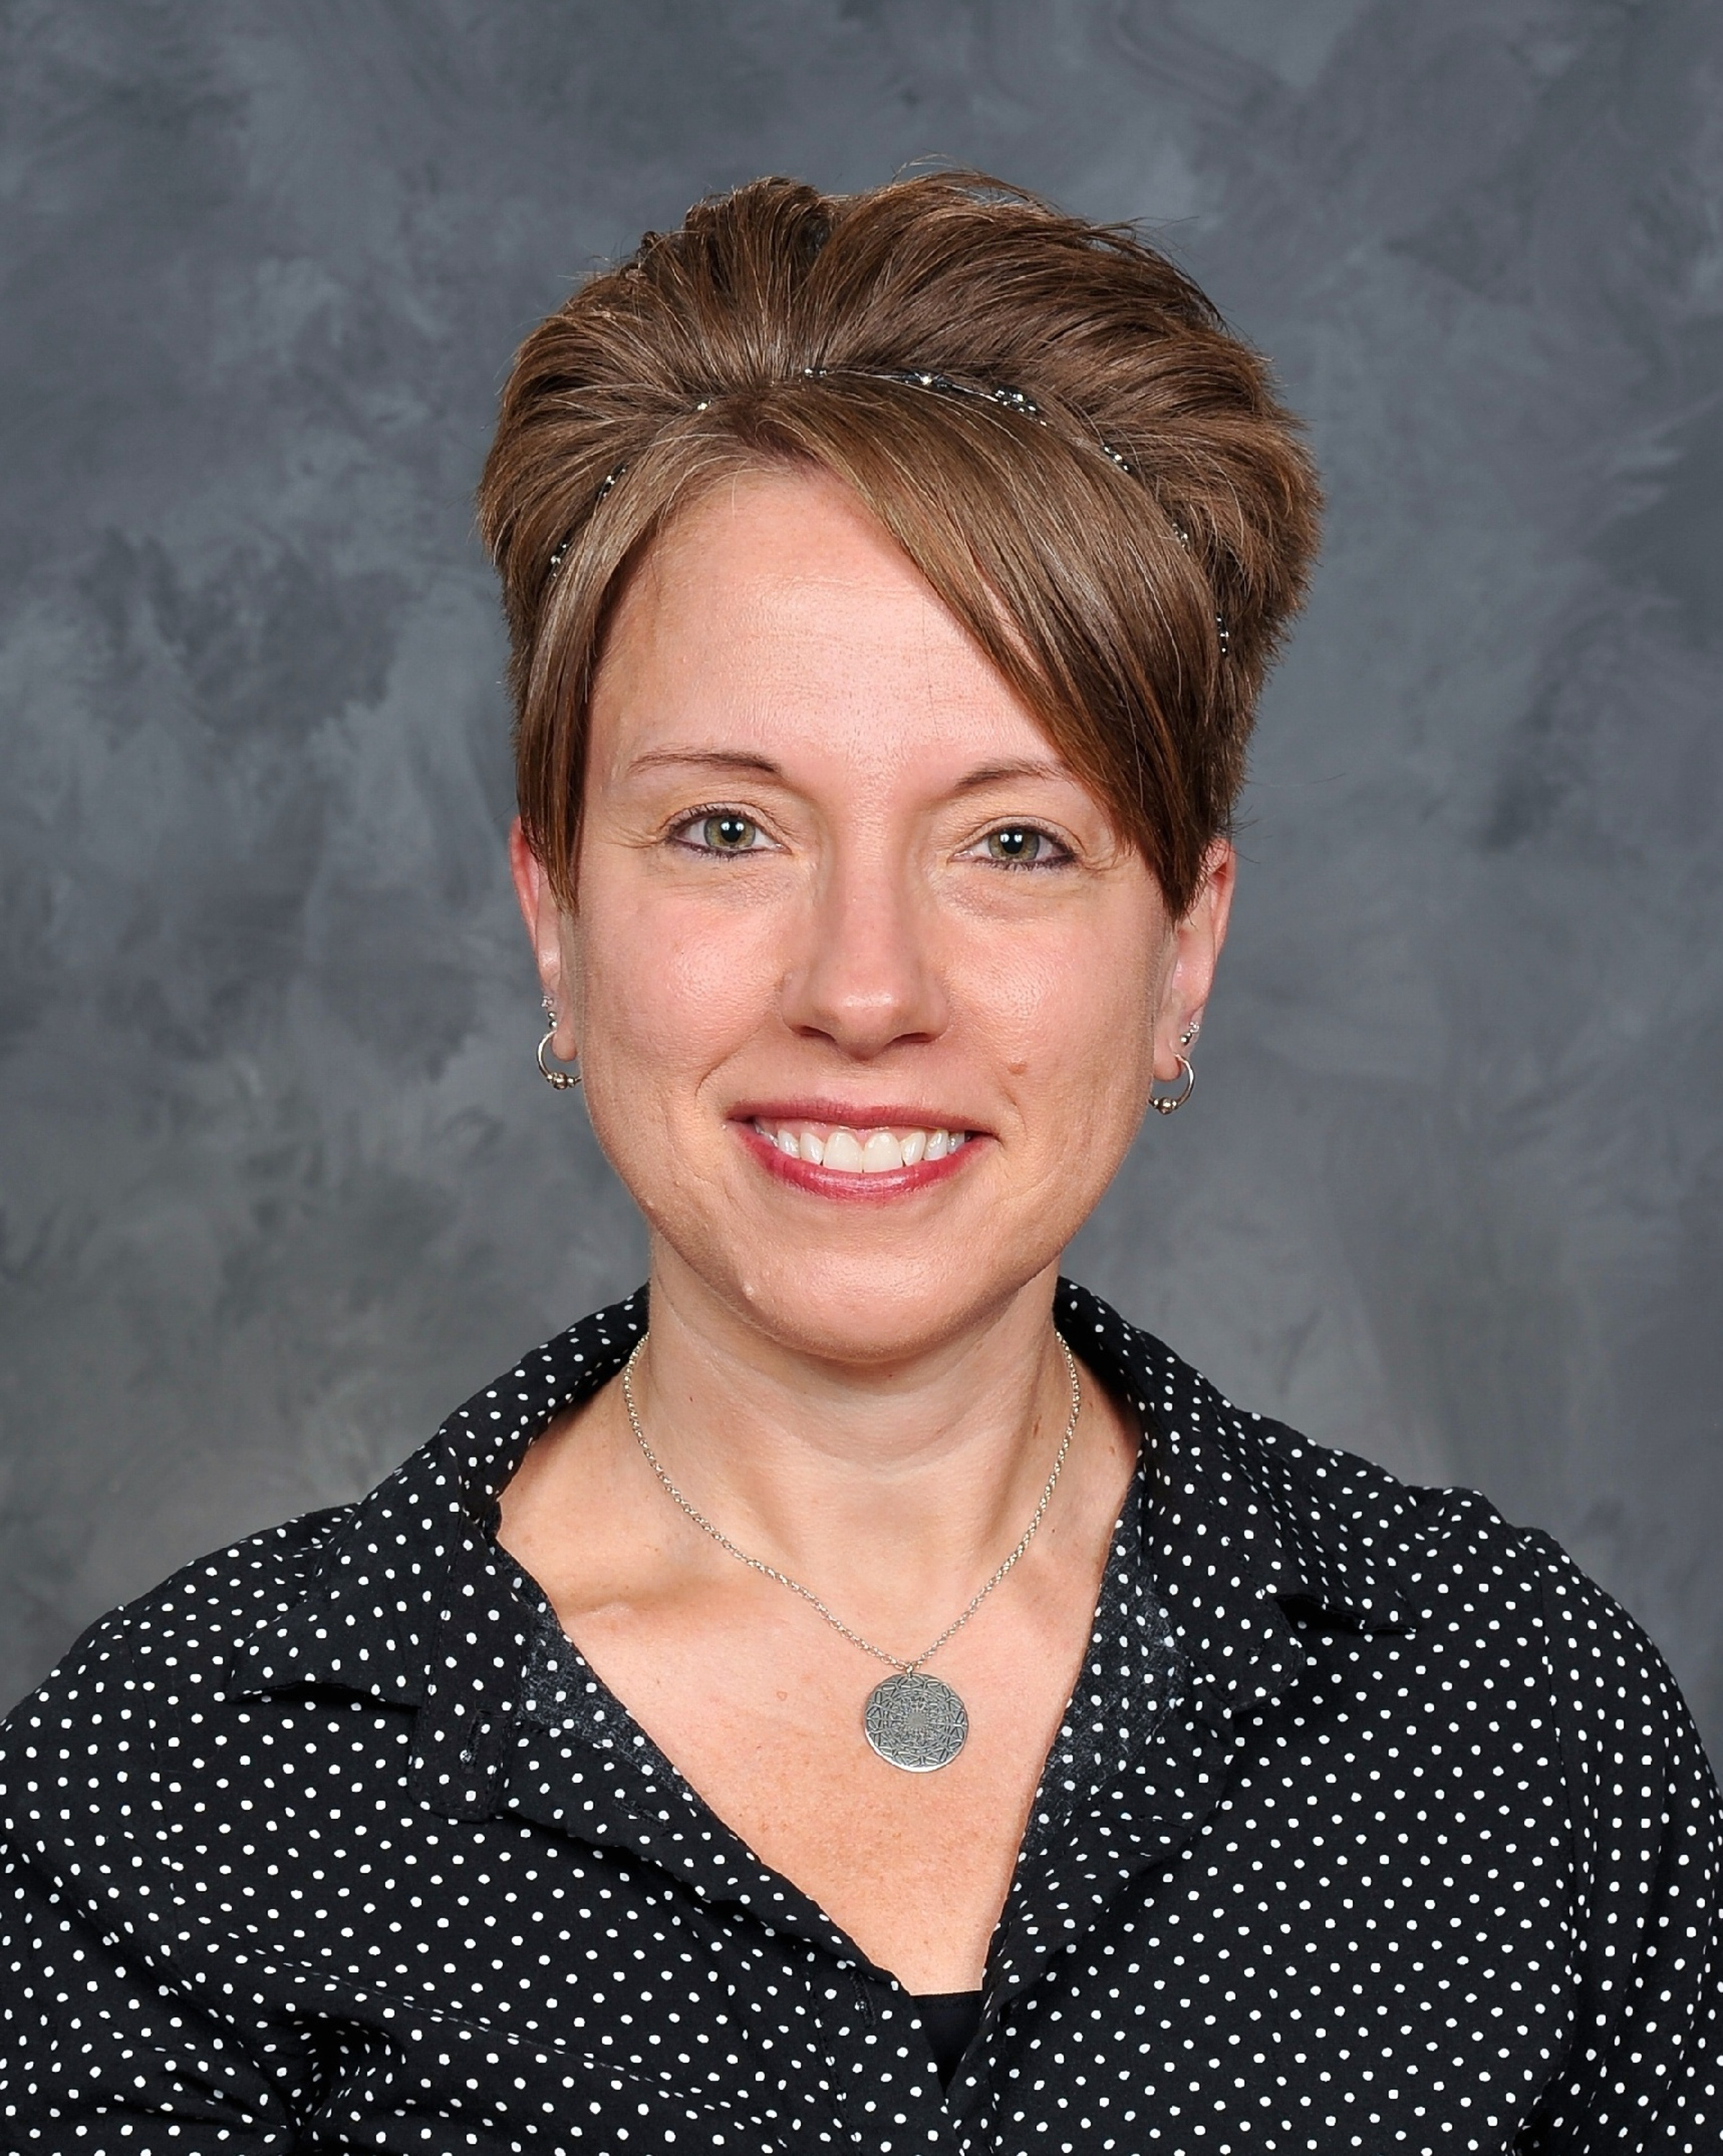 staff headshot photo of Kelly Misch, District Communications Director [photo credit:  Pastor Photography]